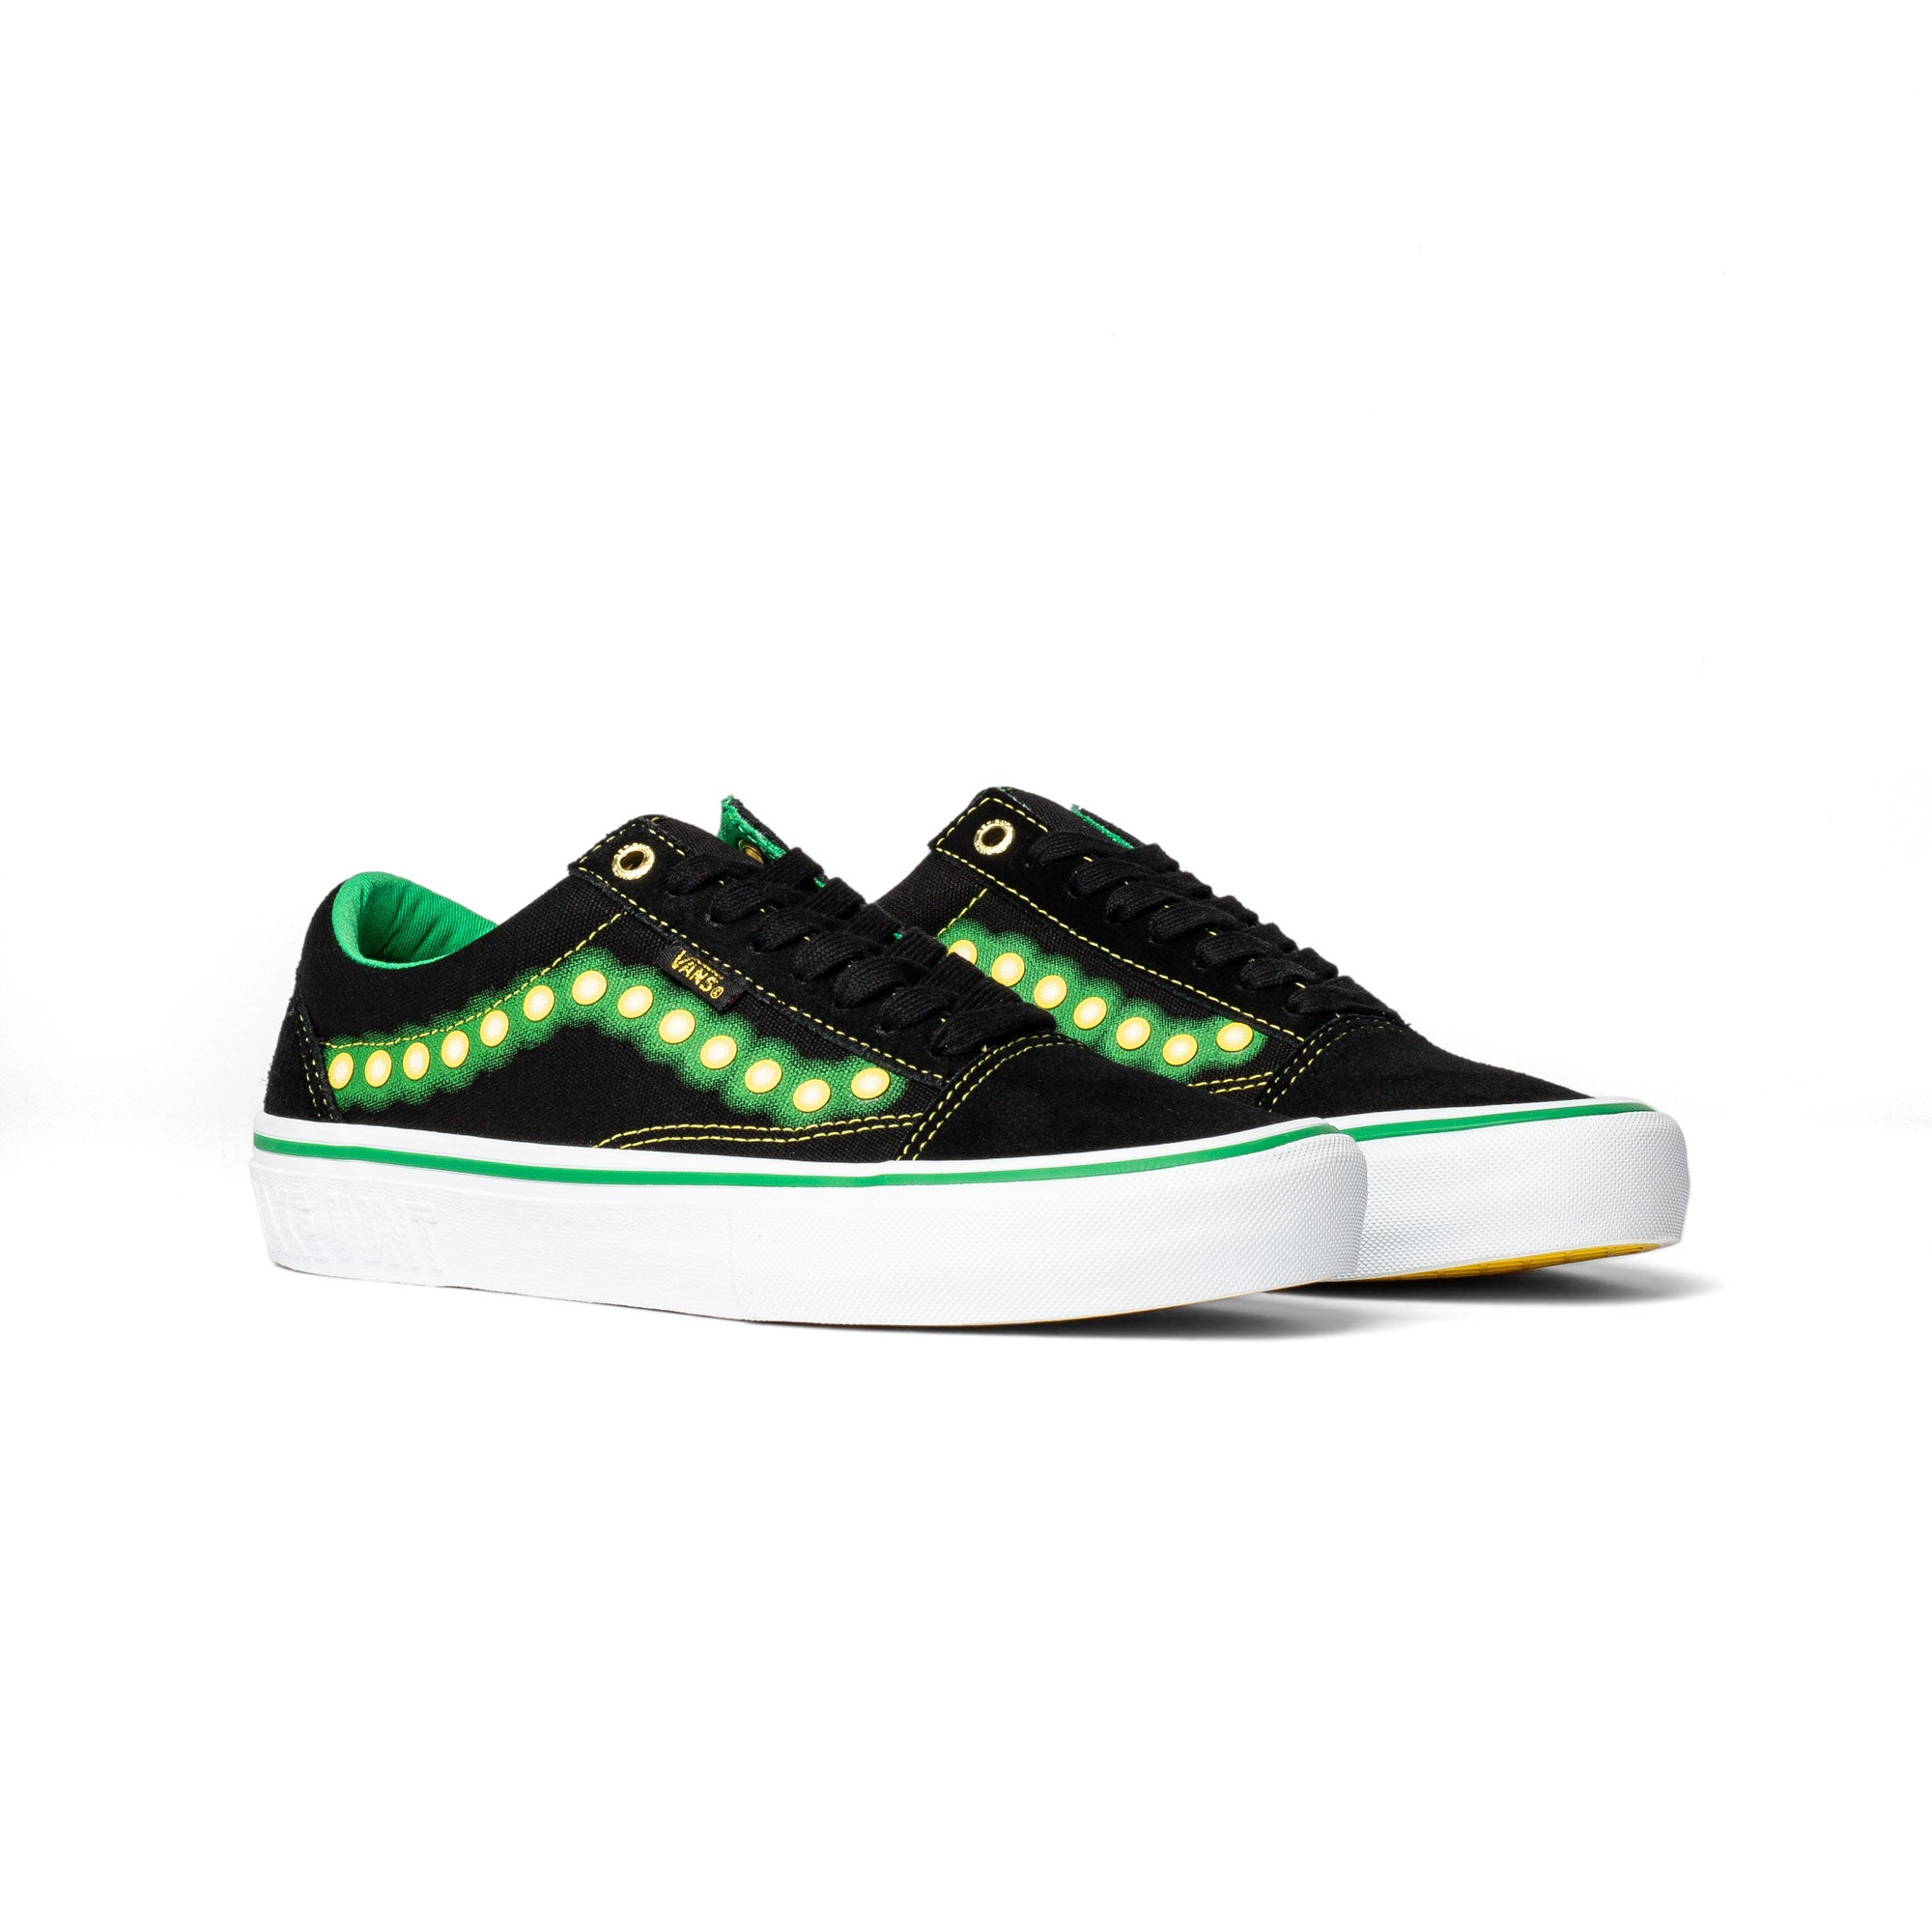 Vans X Shake Junt Old Skool Pro Product Photo #2